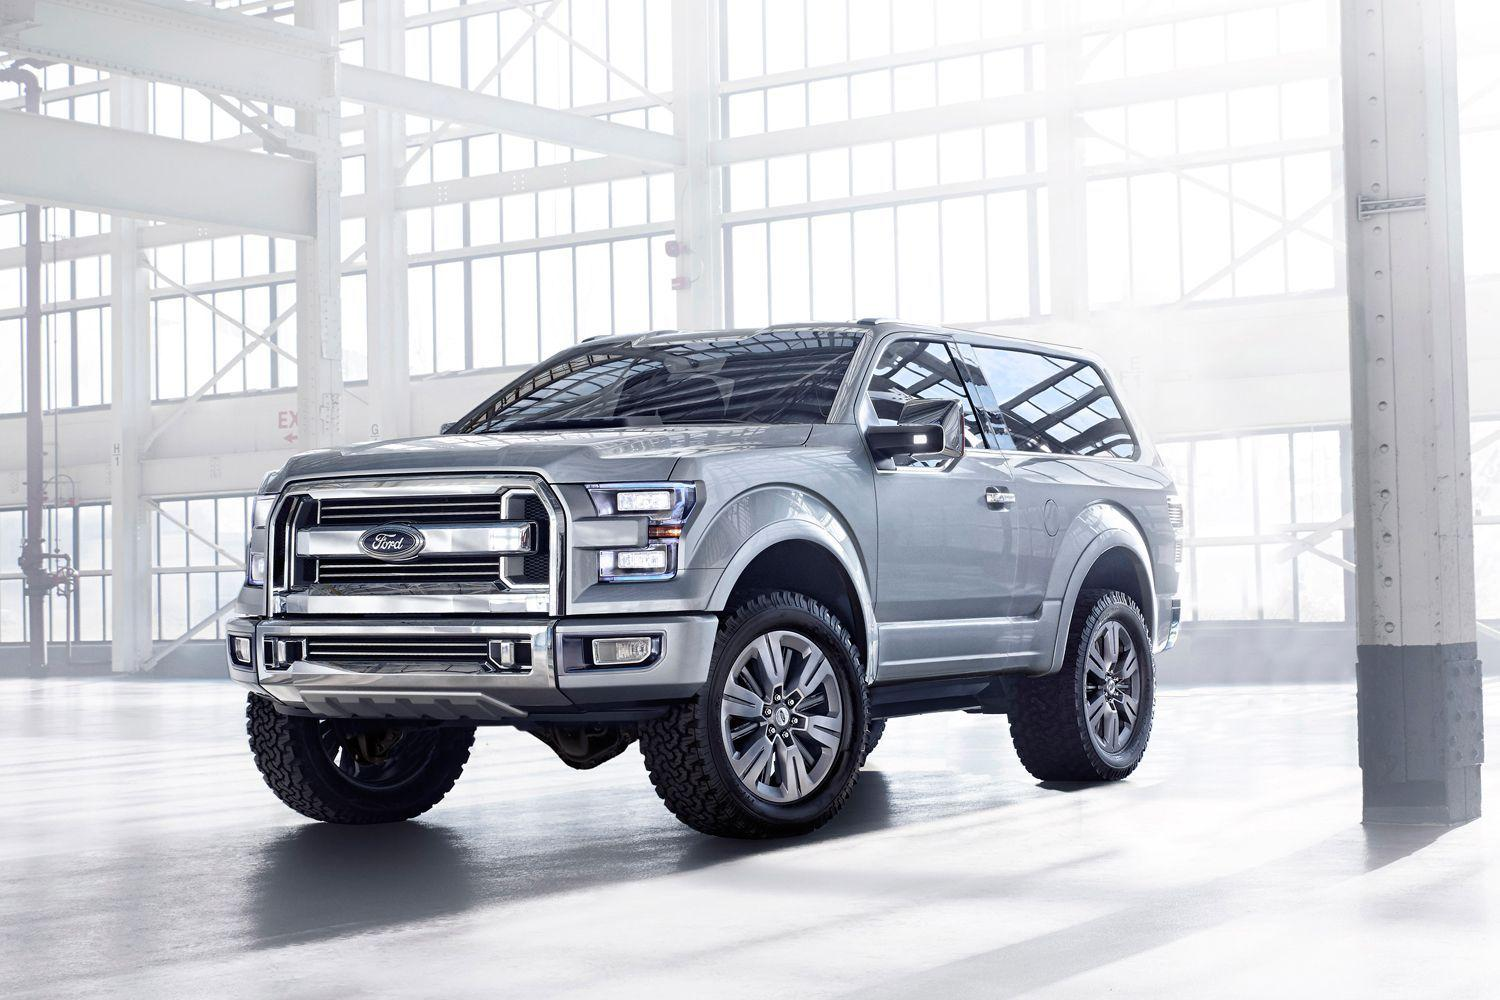 2016 Ford SVT Bronco Coming Soon Diesel Power Magazine - Auto ...